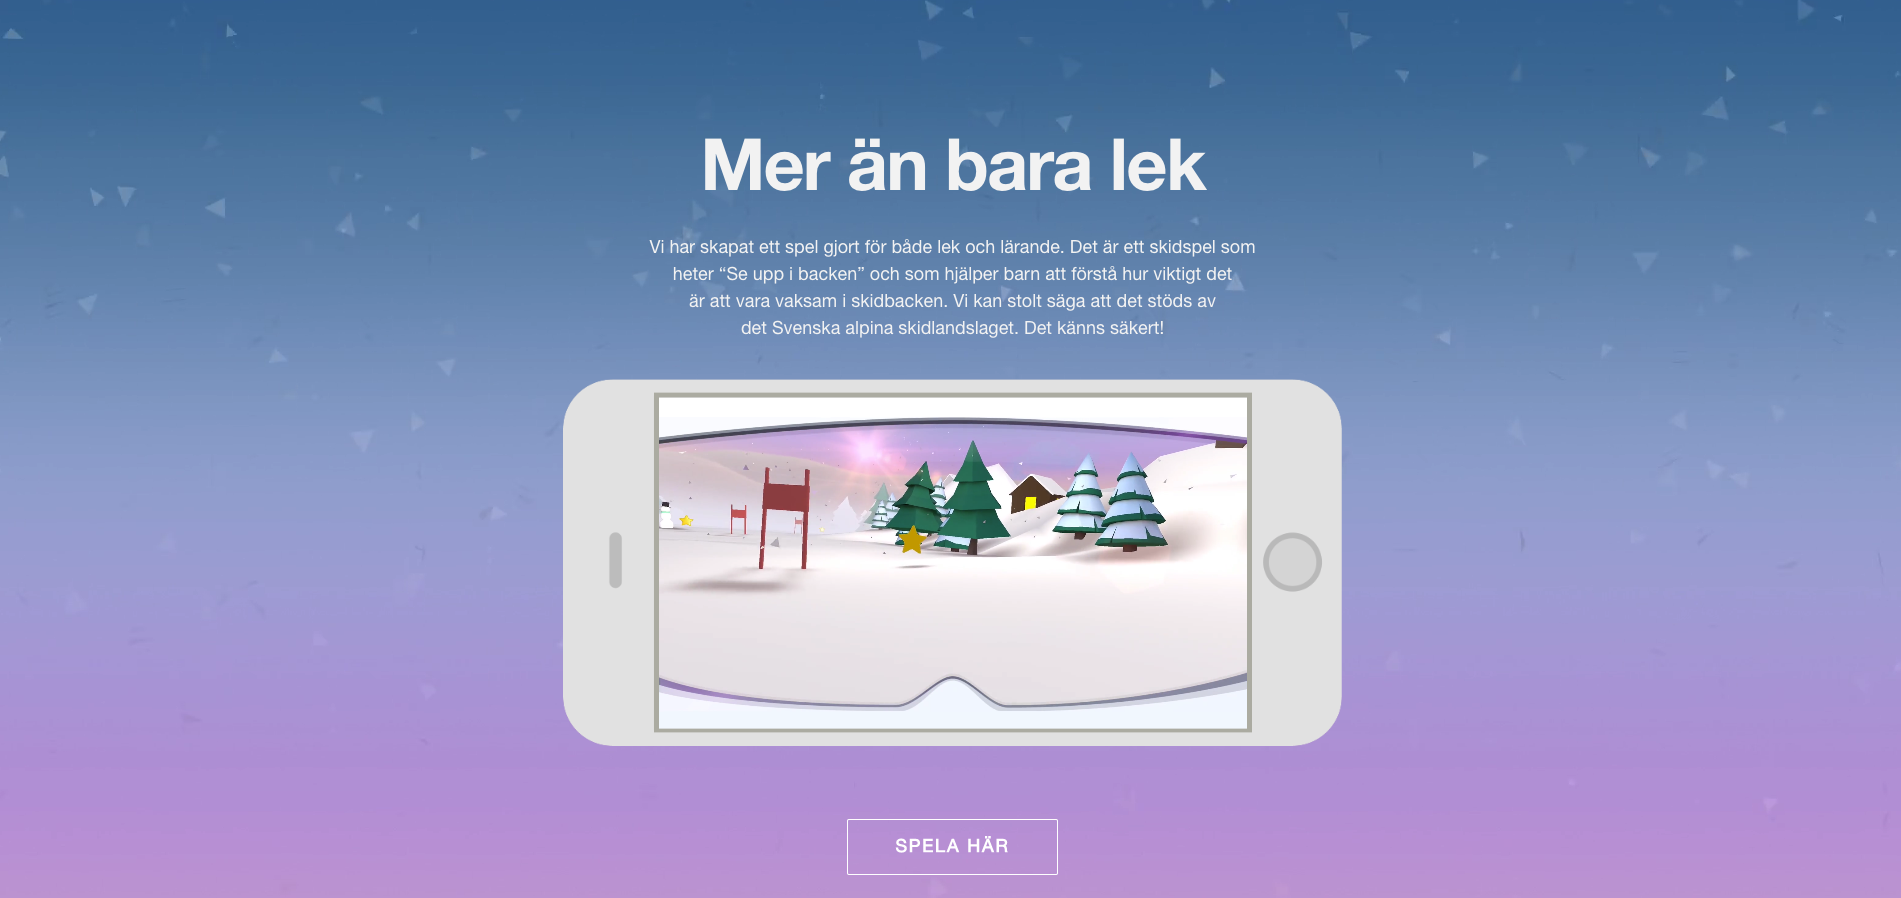 augmented reality website design 2019 trends